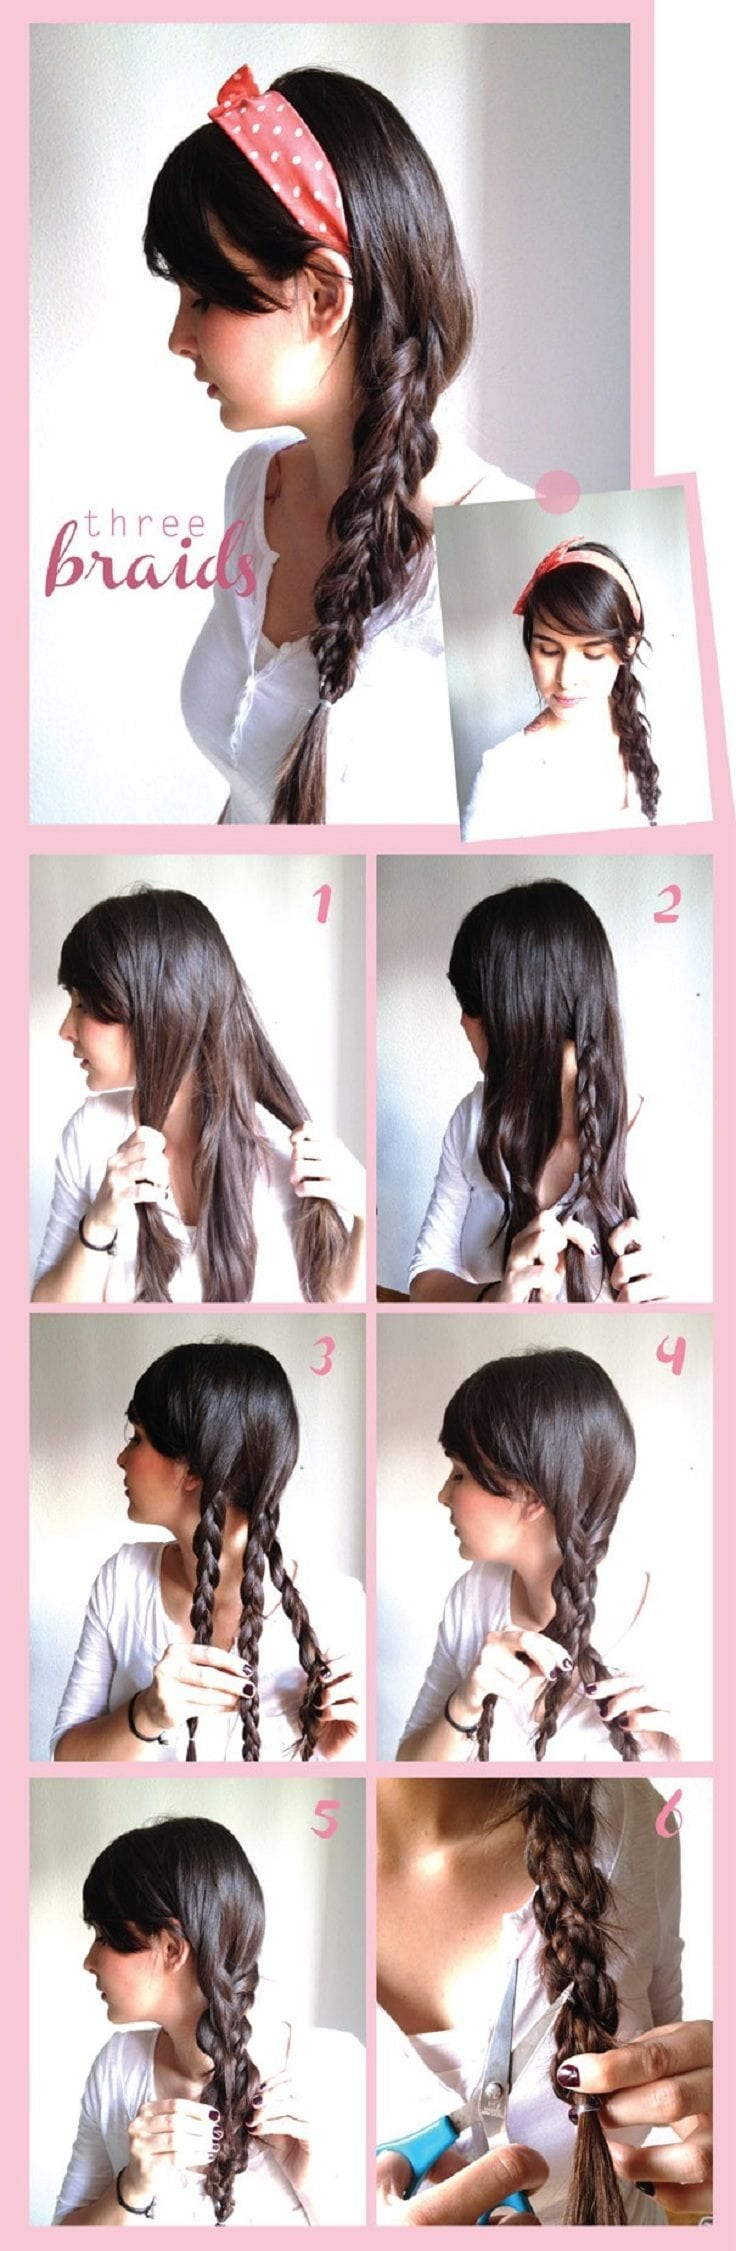 Awe Inspiring 20 Cute And Easy Braided Hairstyle Tutorials Latest Styles Hairstyle Inspiration Daily Dogsangcom